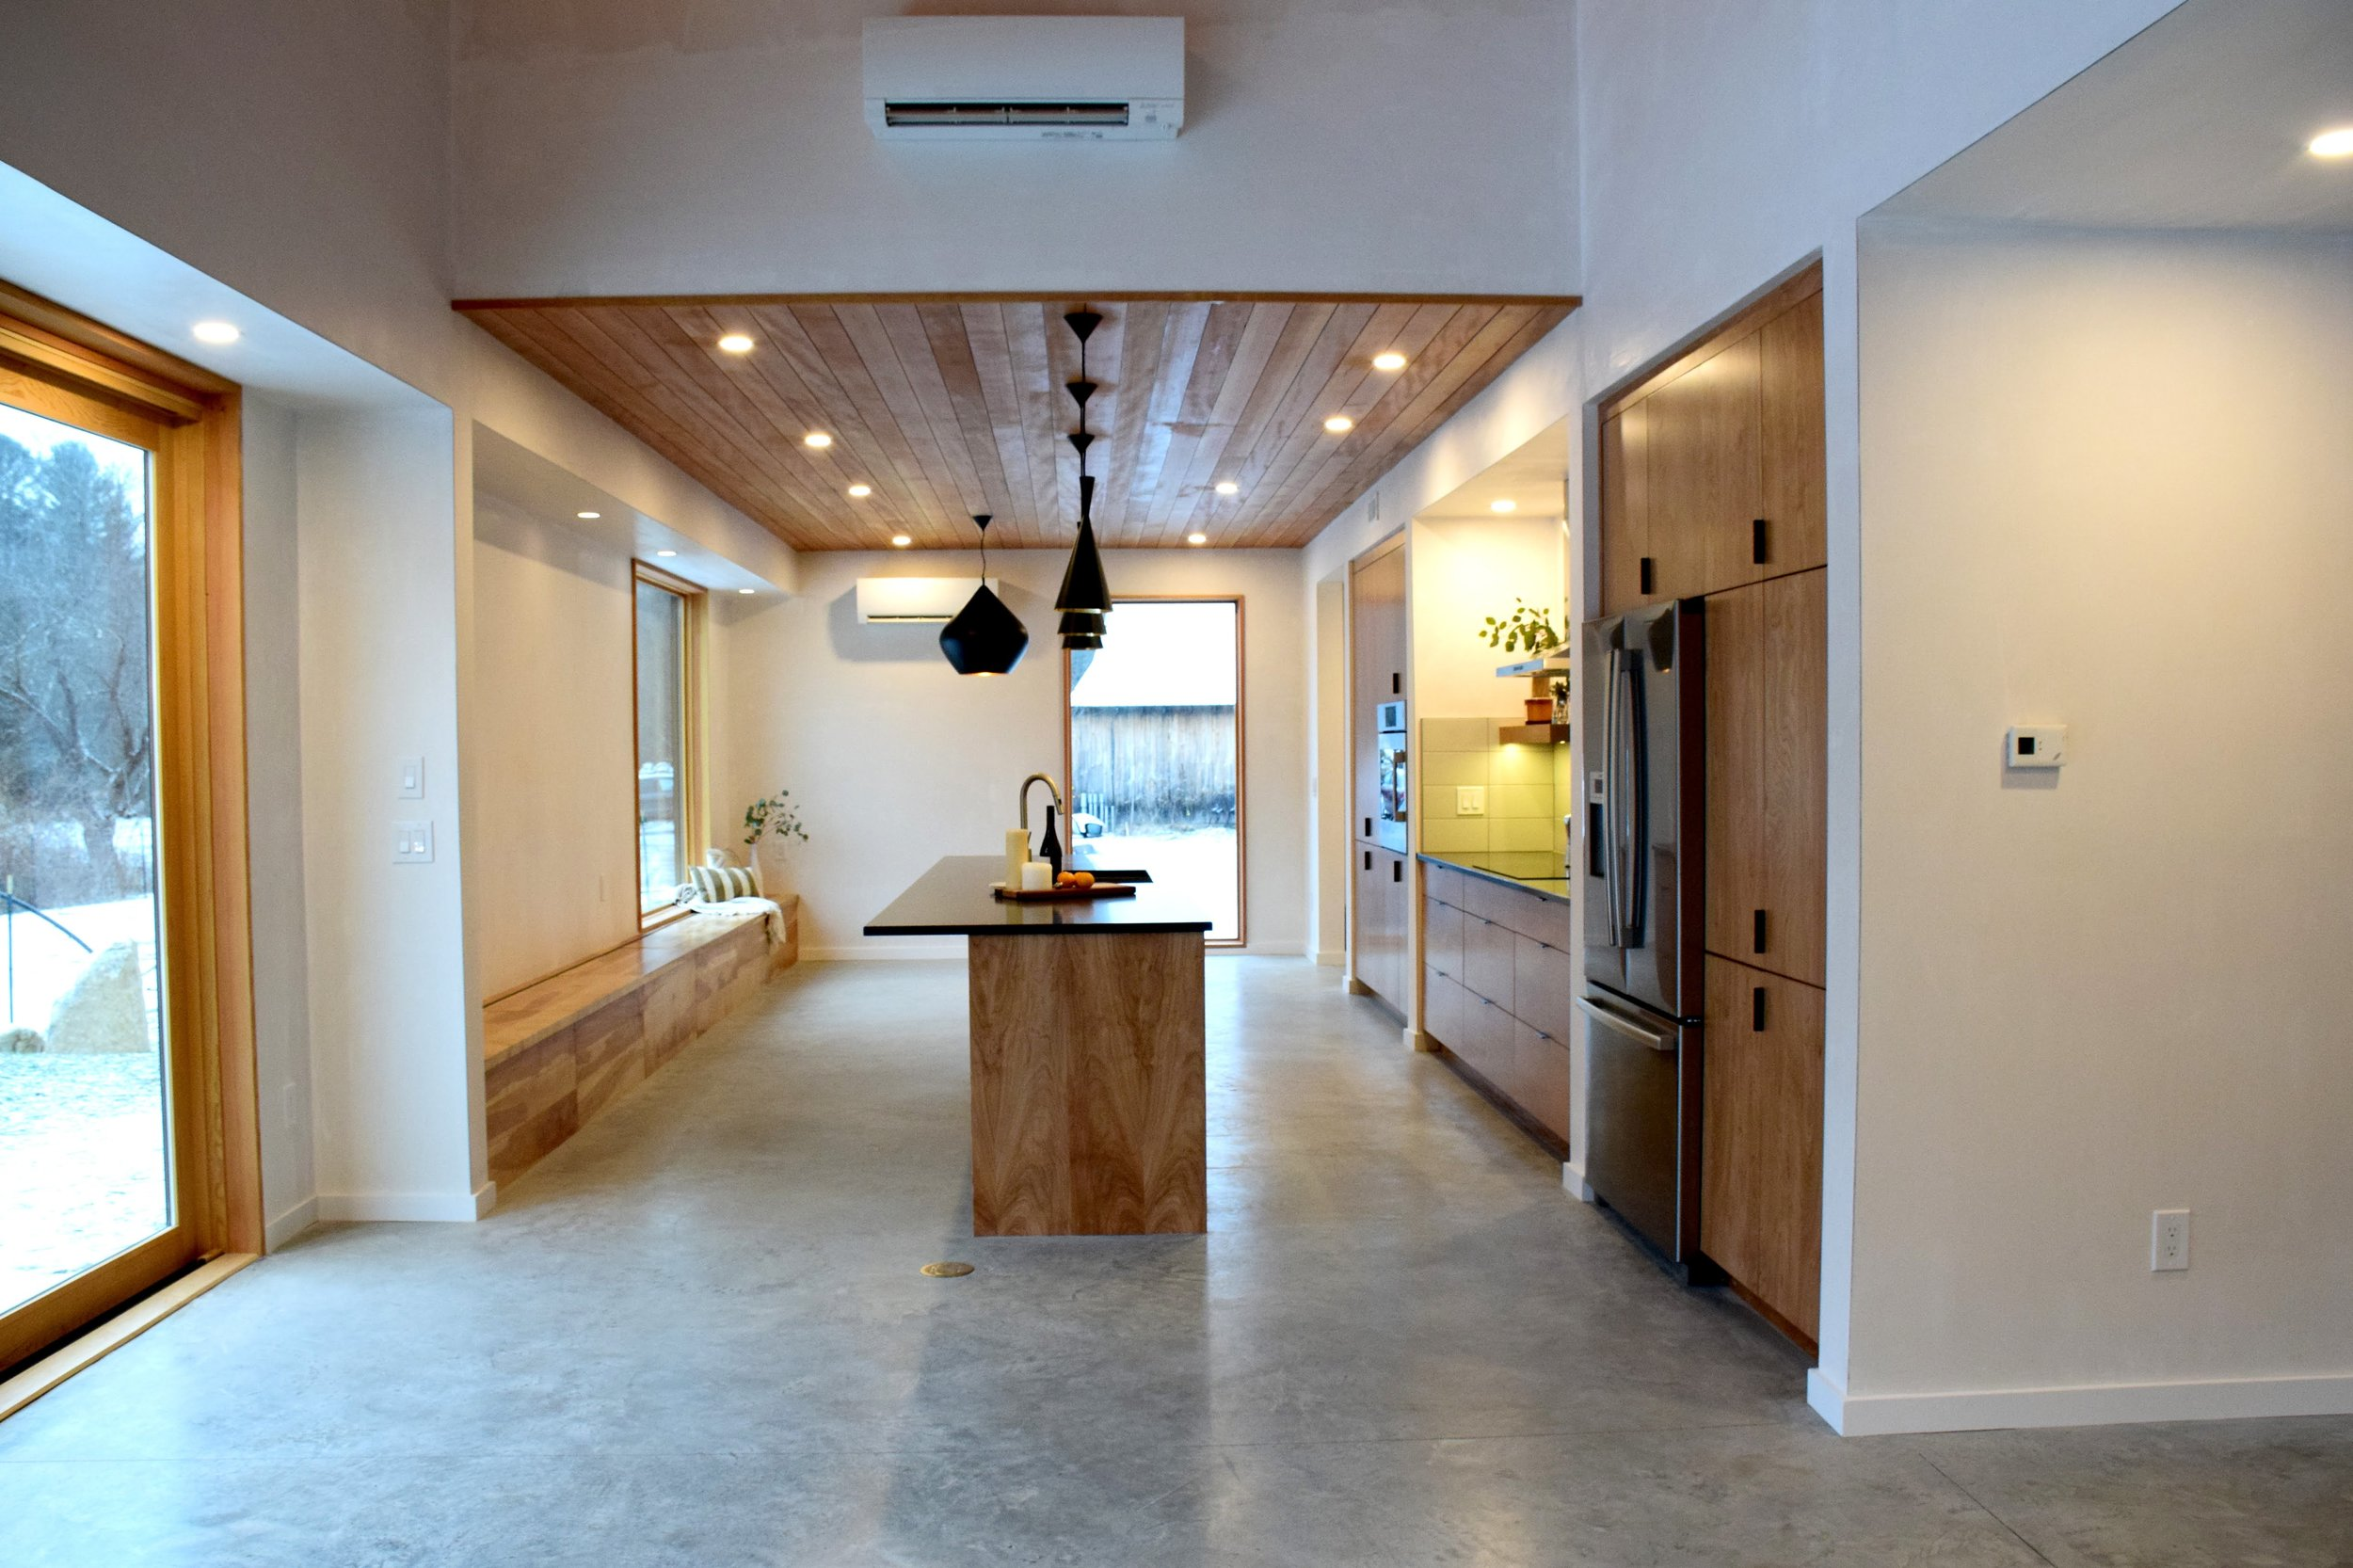 kitchen all view.jpg